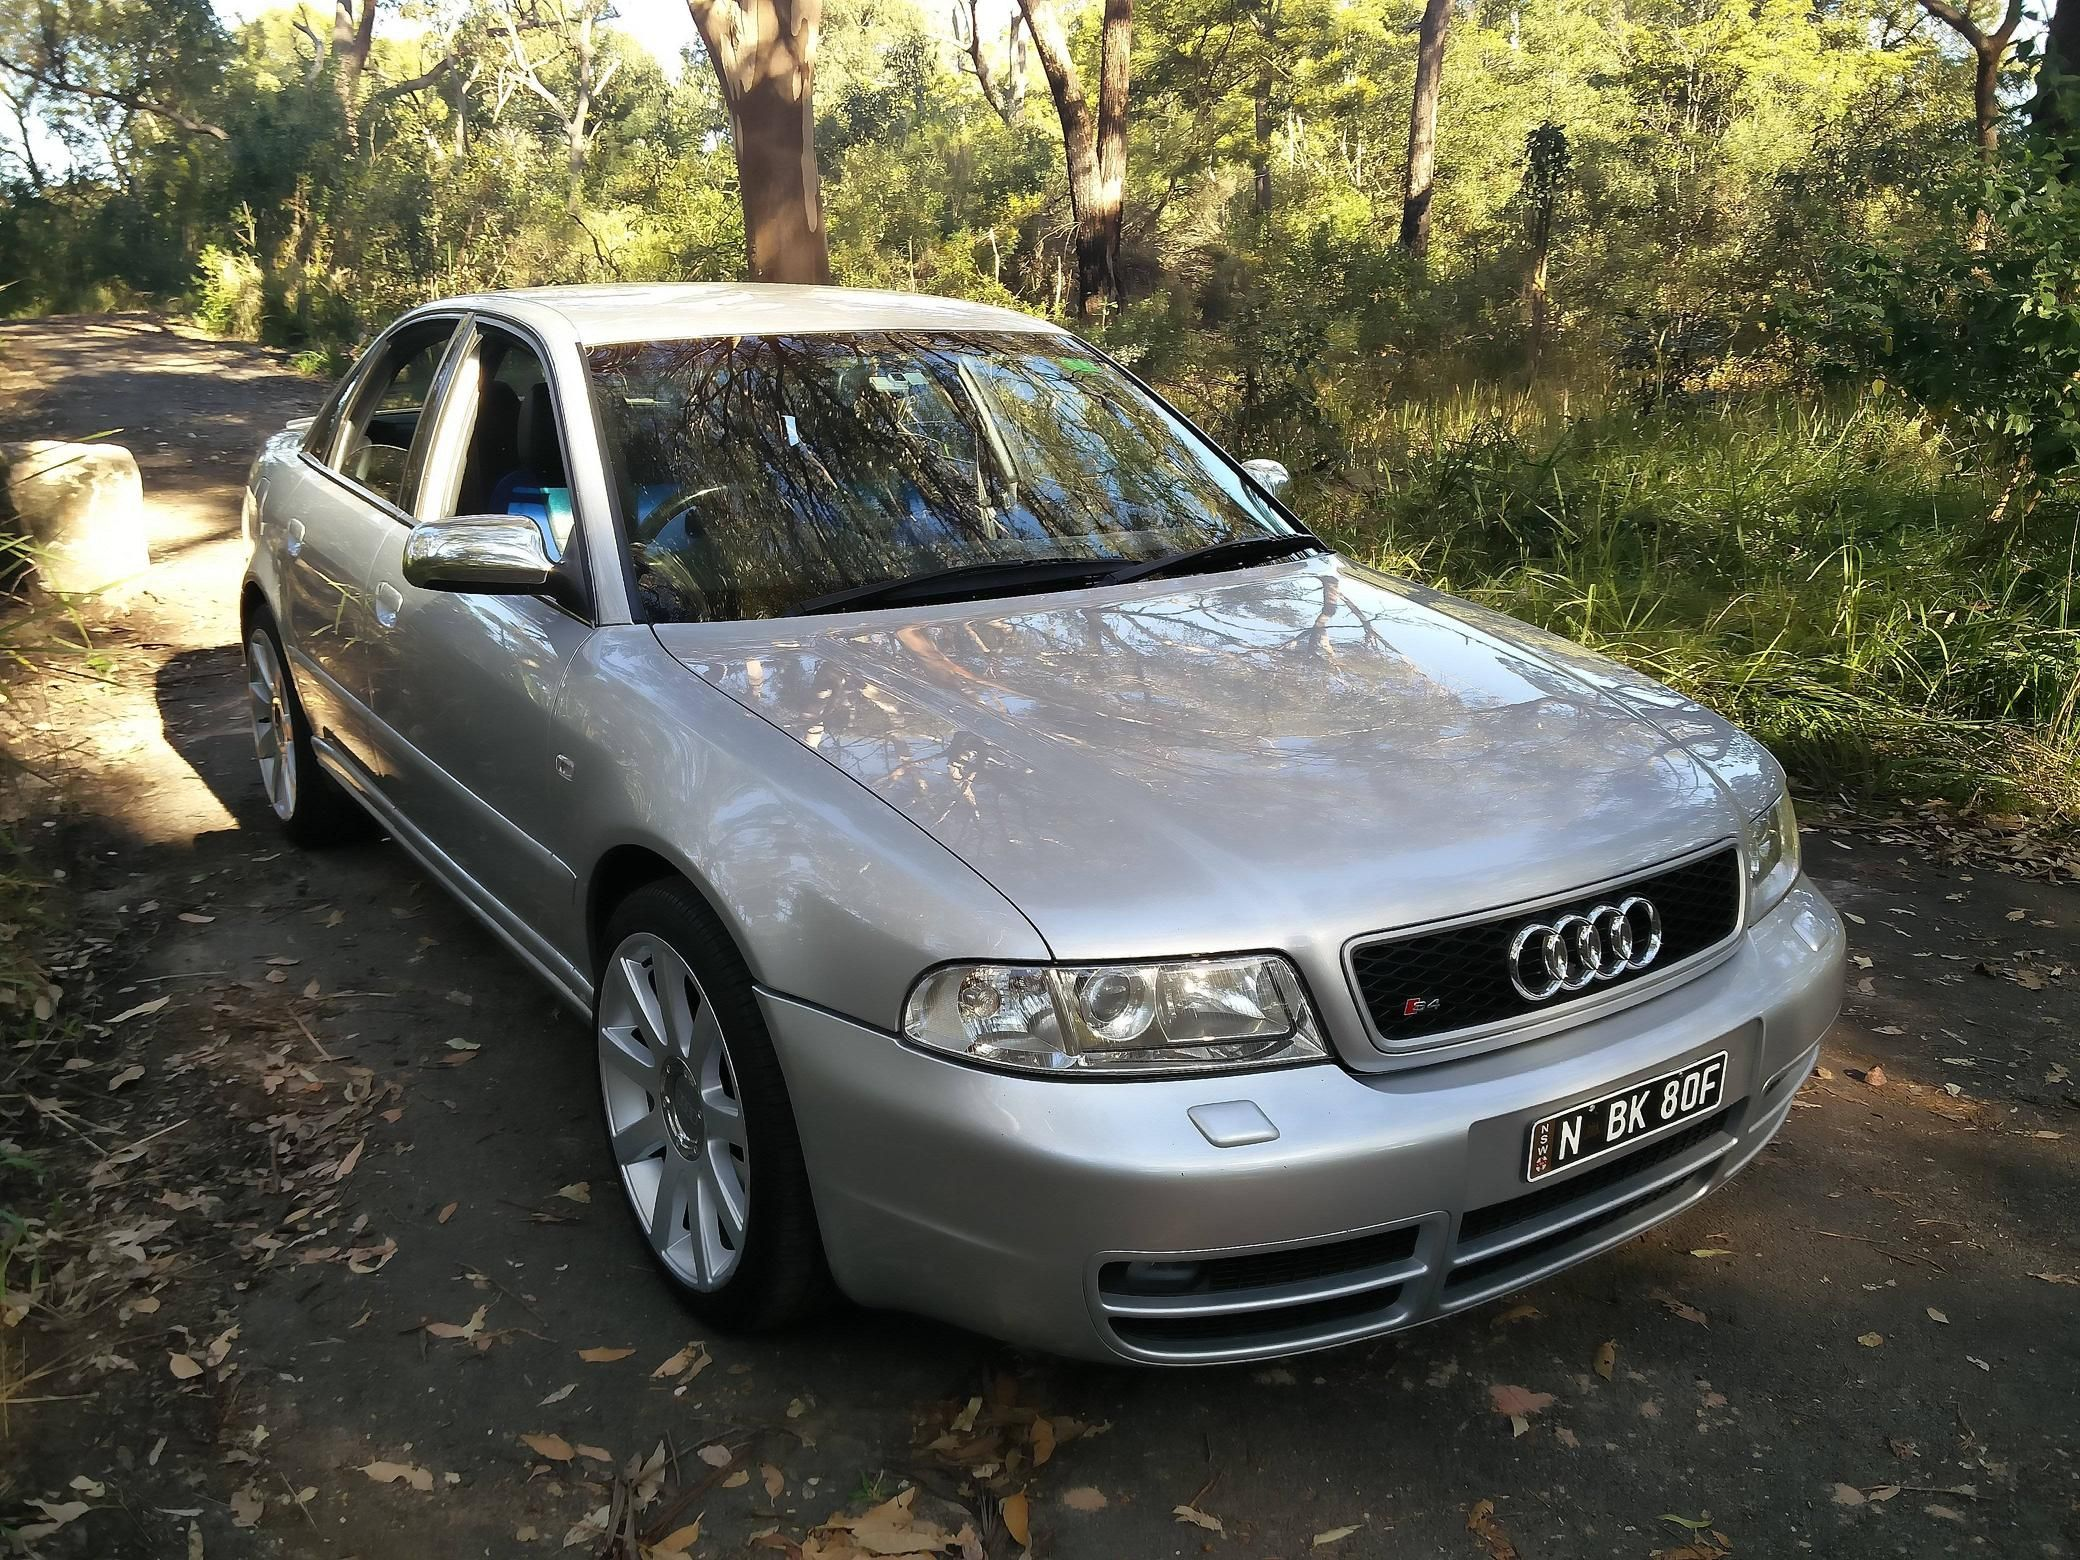 Thinking About Saying Goodbye To My 2000 B5 S4 After 10 Years Still Love It To Pieces Audi Cars Car Quattro Audi Audi A4 Bmw Car